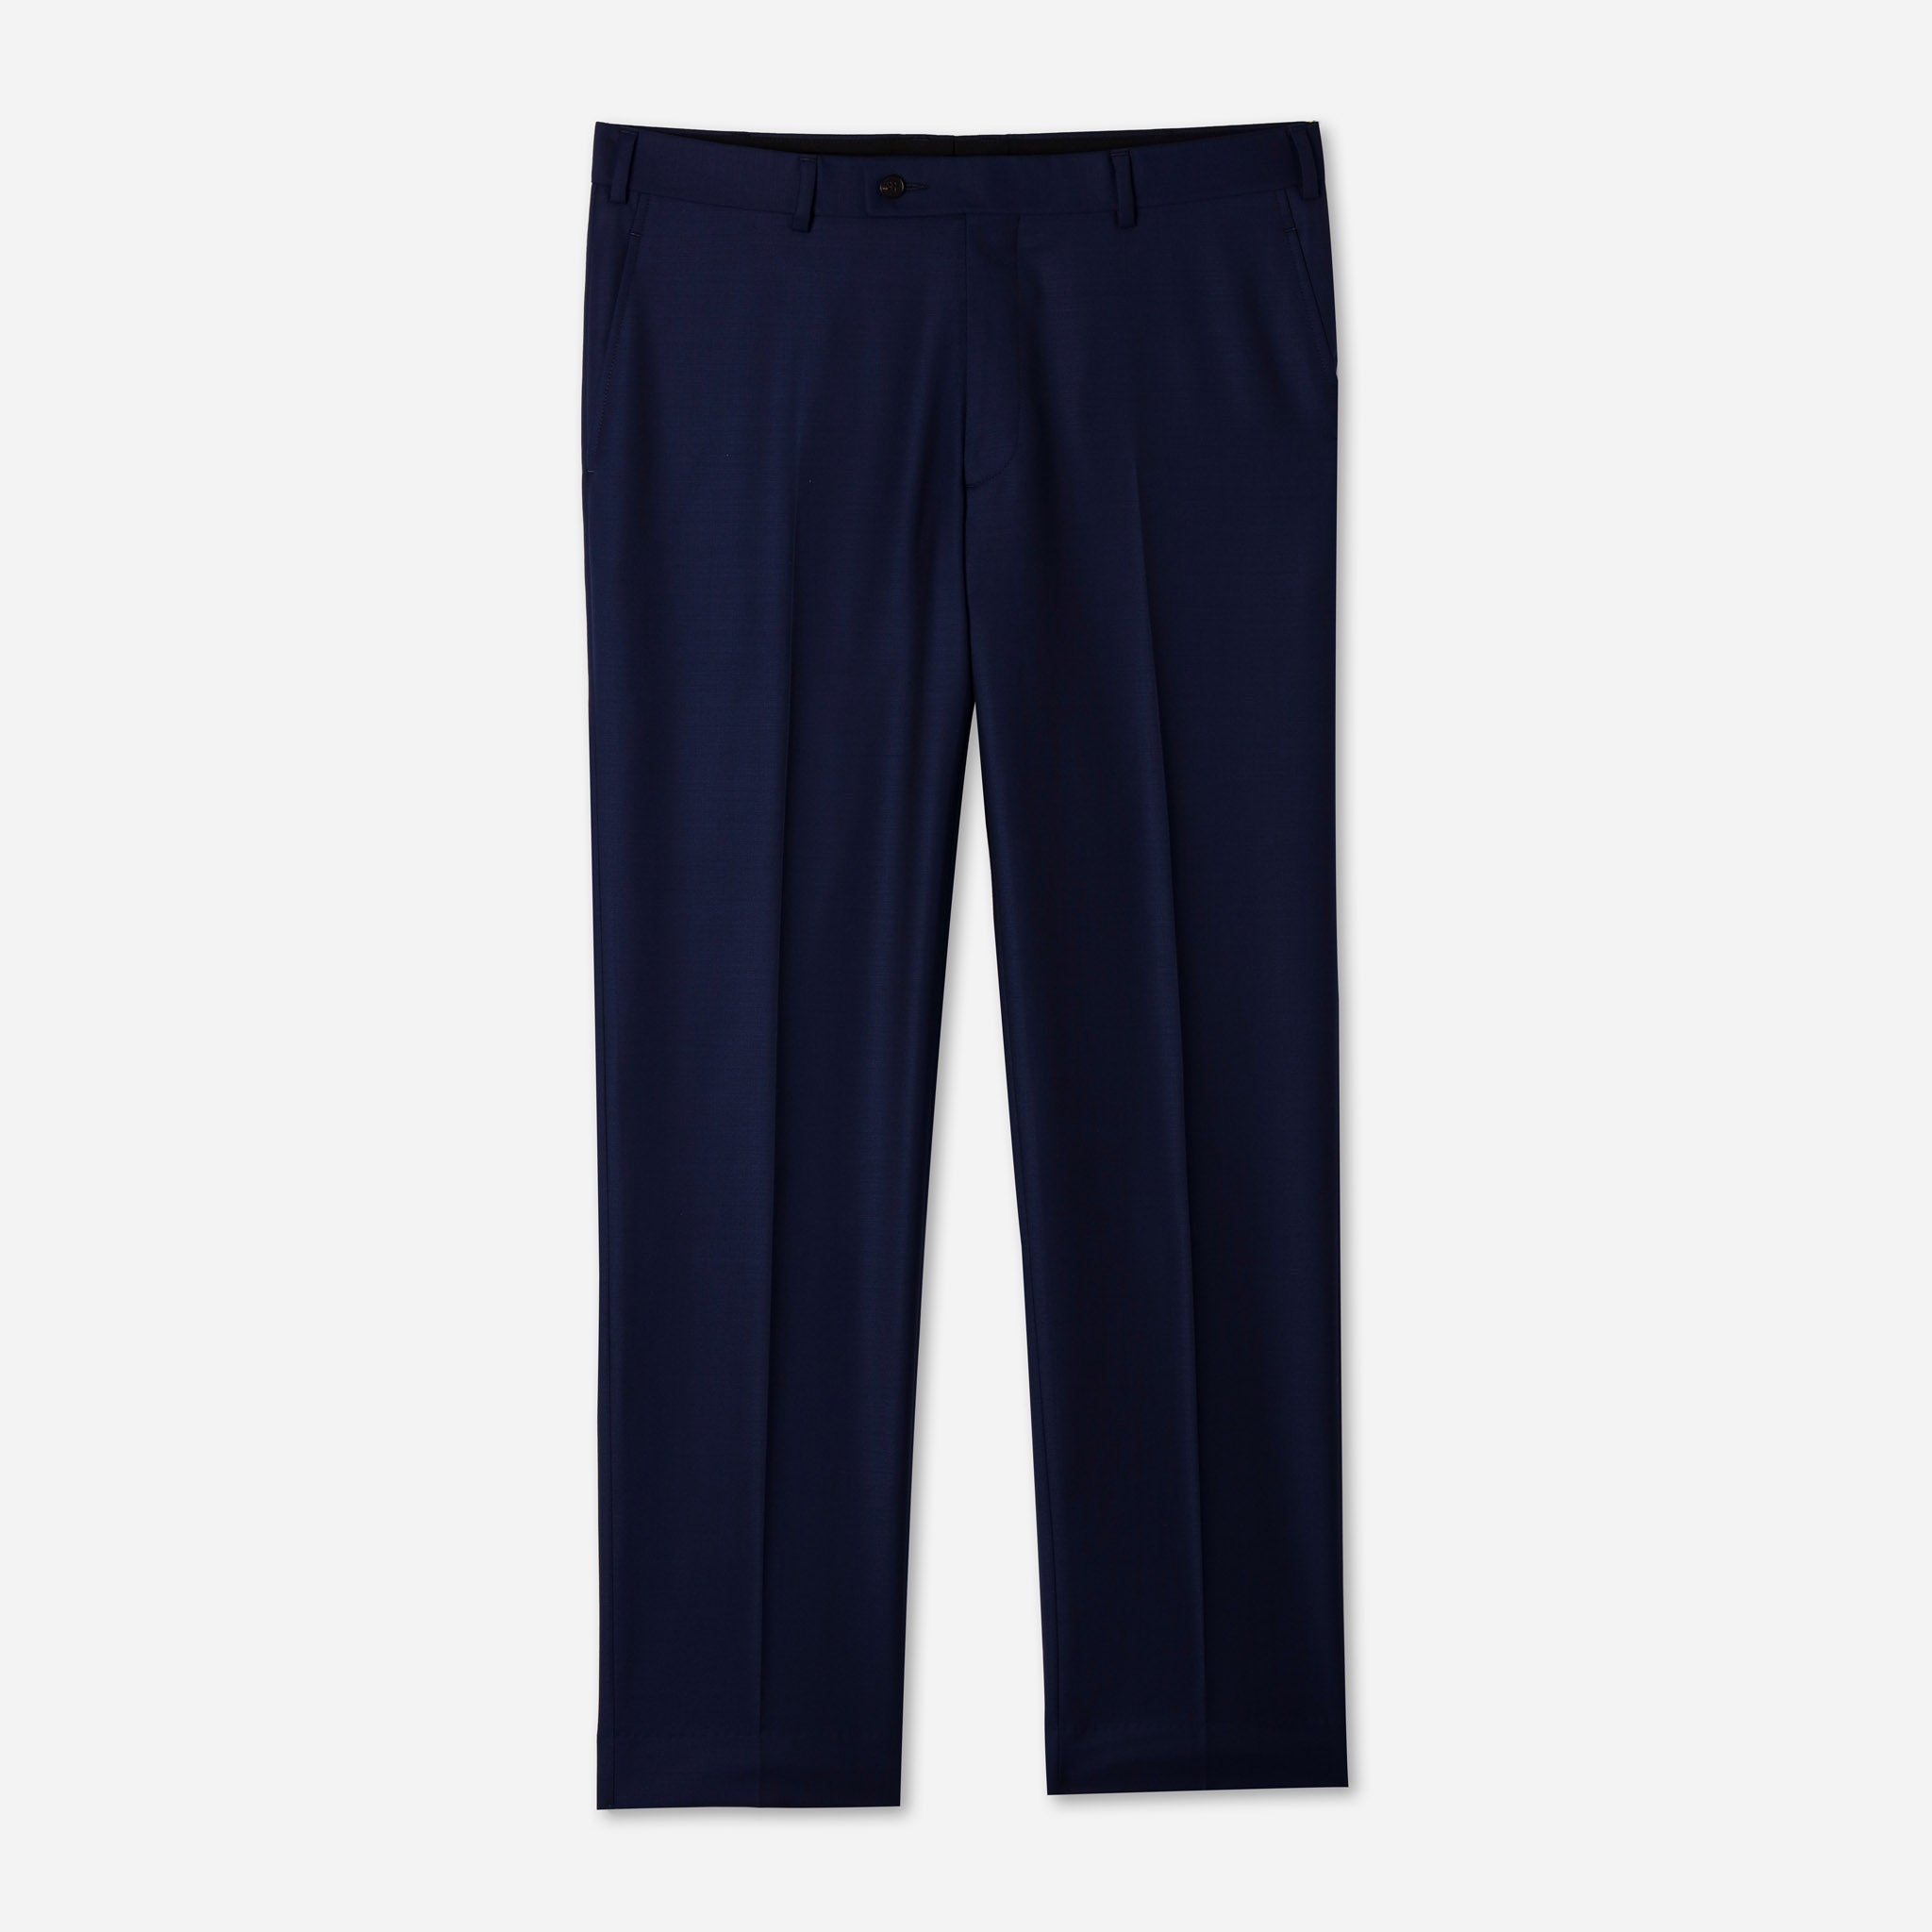 Essential Luxe Trousers in British Blue